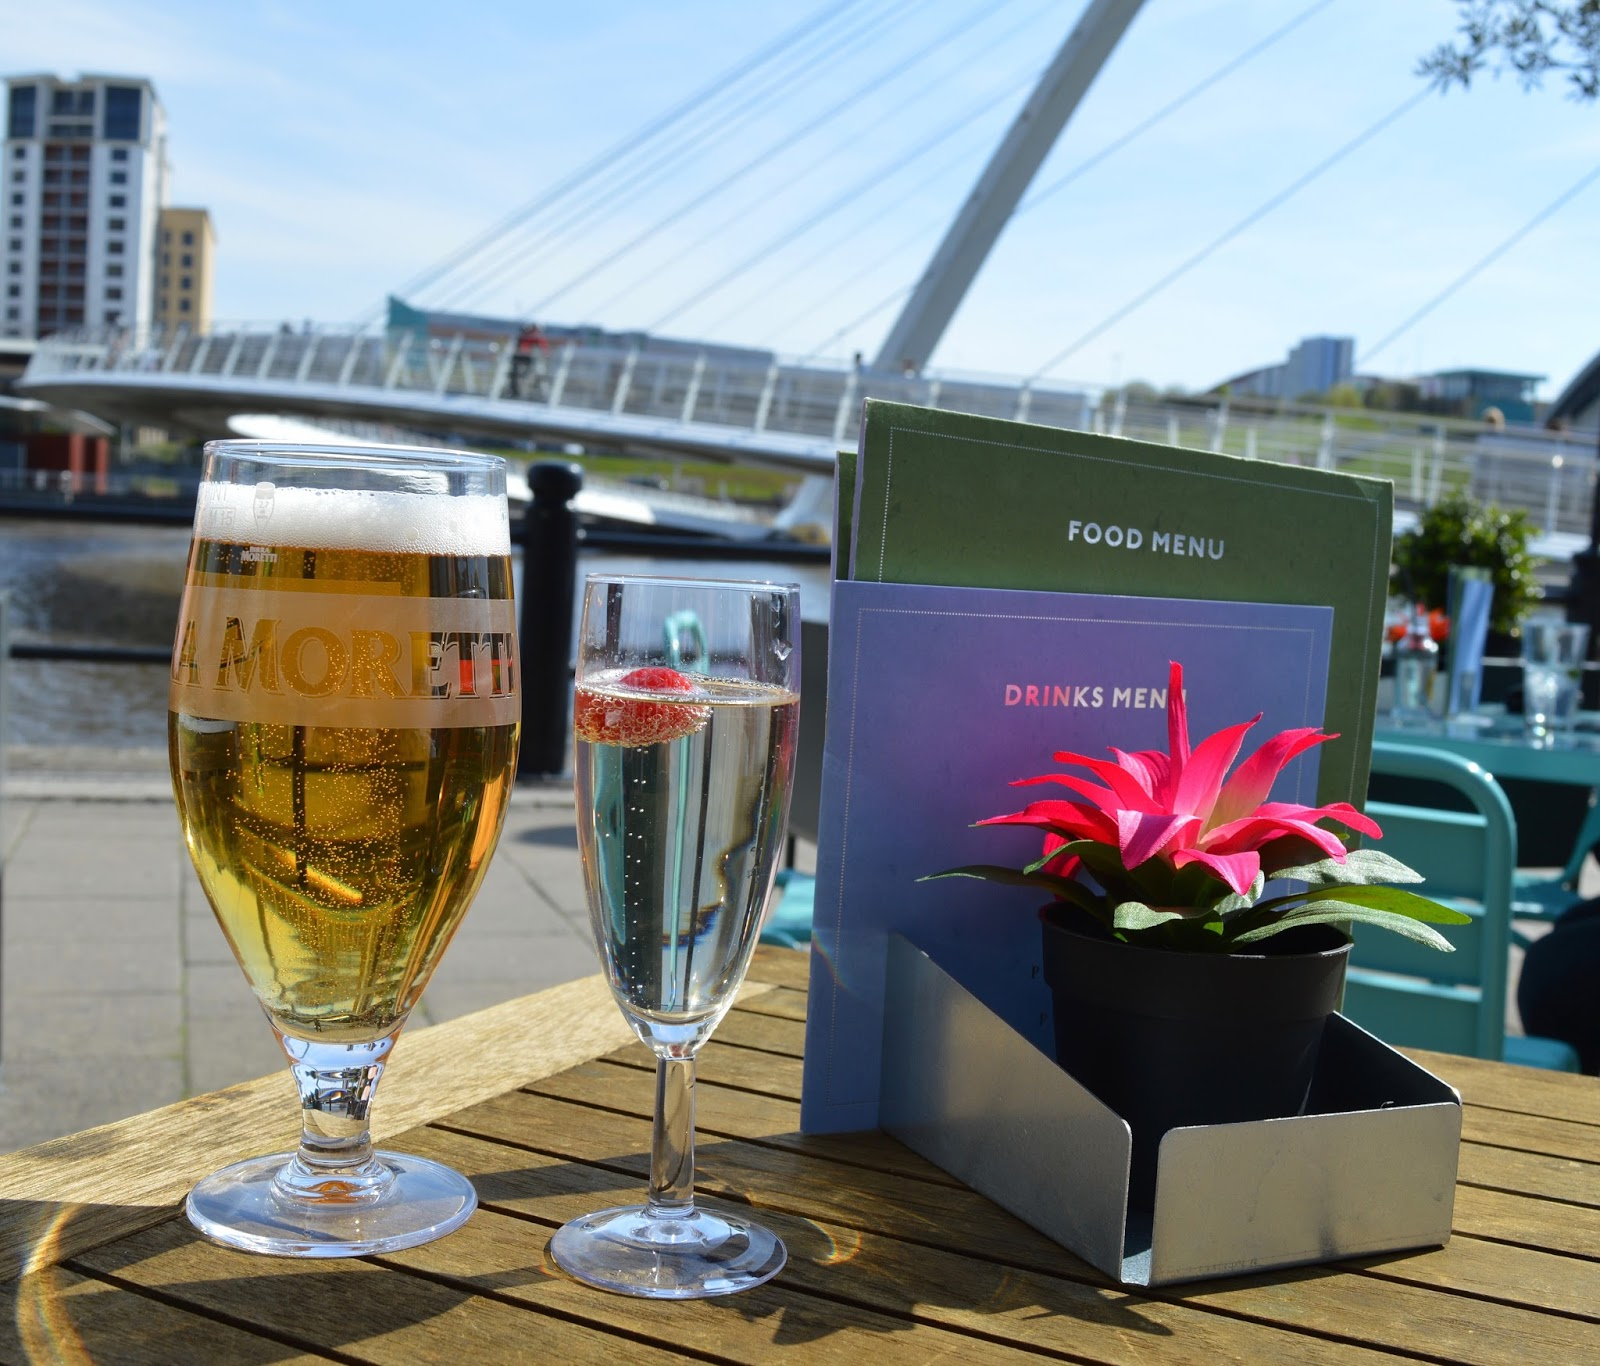 10 Places To Visit | Newcastle - Gateshead Quayside - Drinks outside at Pitcher and Piano